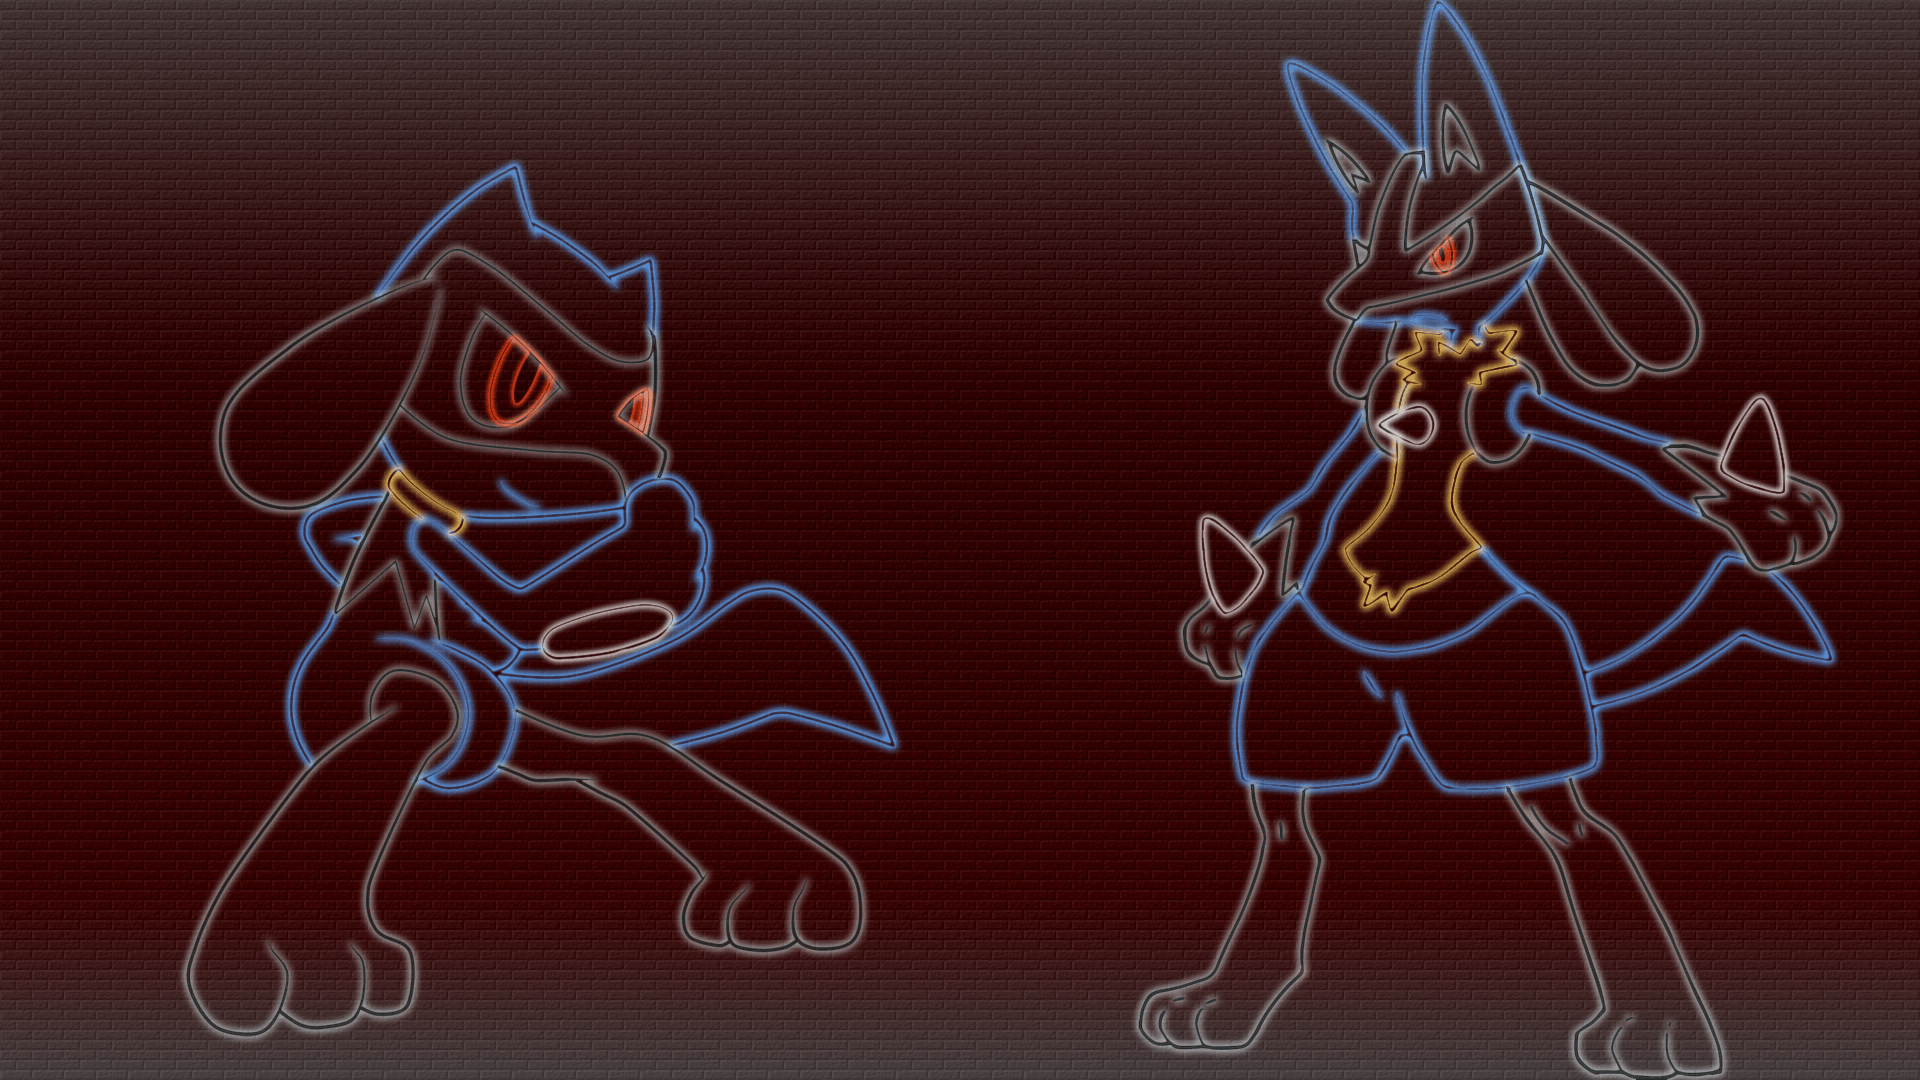 riolu and lucario comic | Riolu and lucario neon wallpaper by gturbo ...